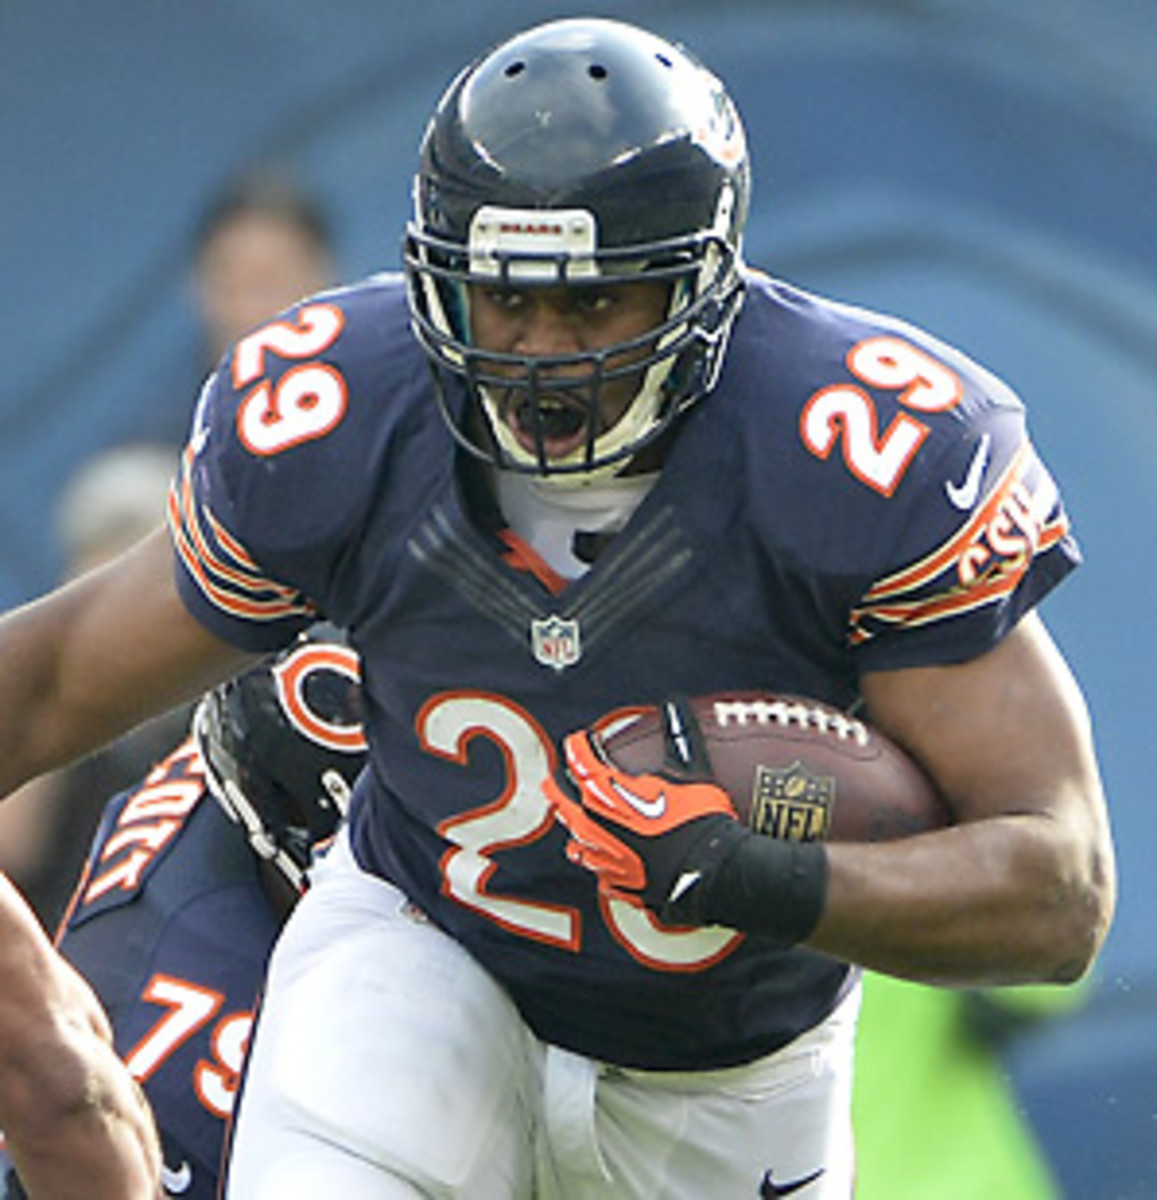 Michael Bush averaged just 3.6 yards per carry in 2012, the lowest of his five-year career.